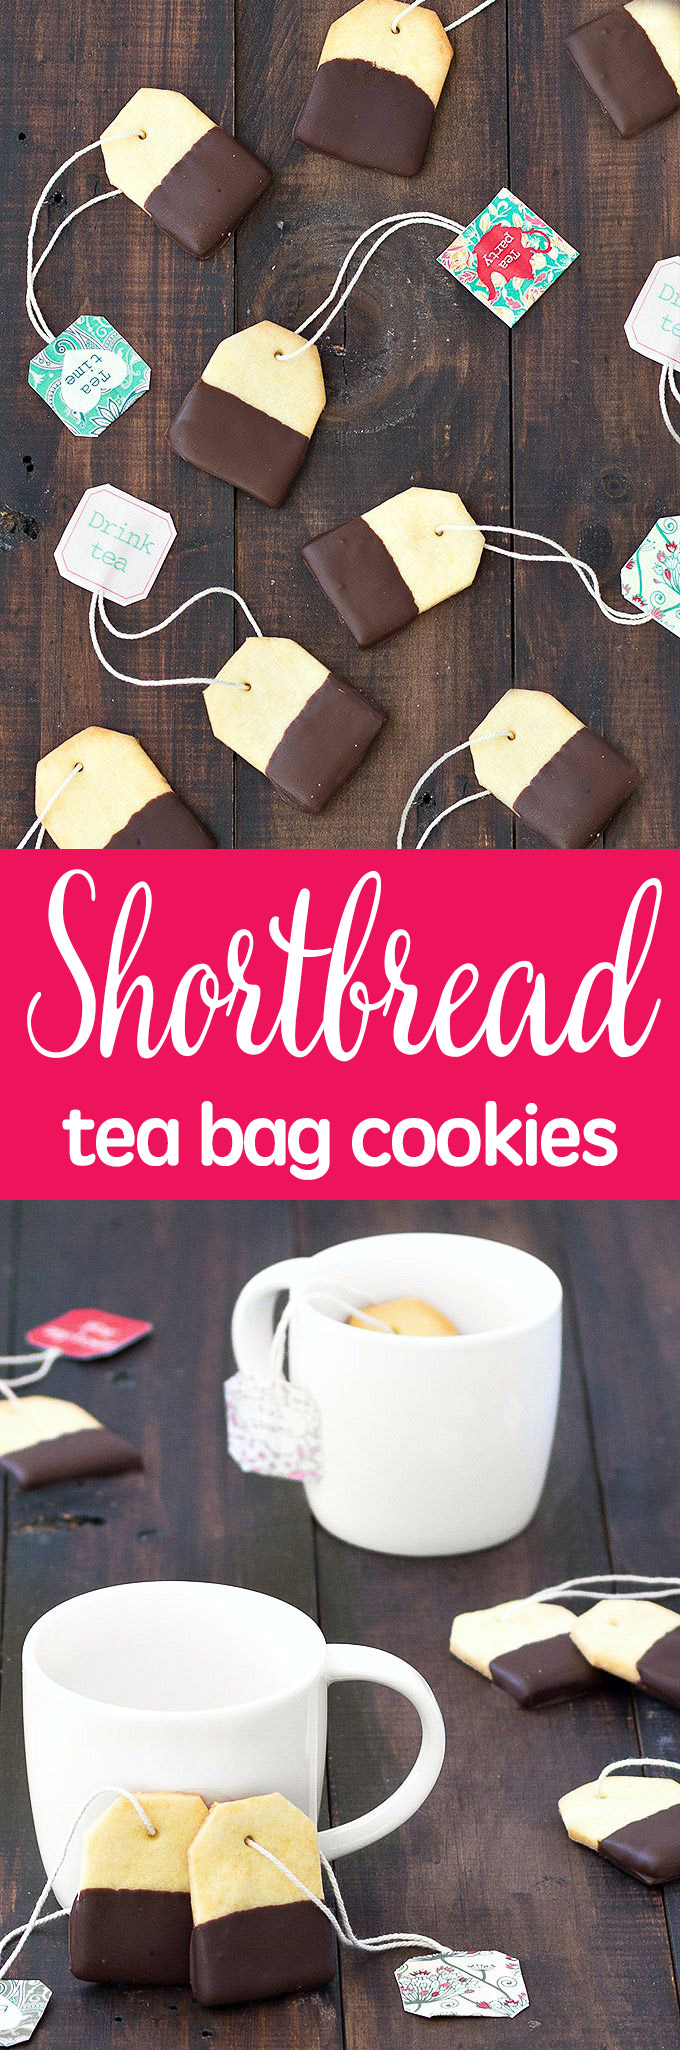 Impress your friends the next time you have them over for tea with these chocolate-dipped shortbread tea bag cookies. Easy recipe + step by step tutorial. #cookies #baking #chocolate #giftideas